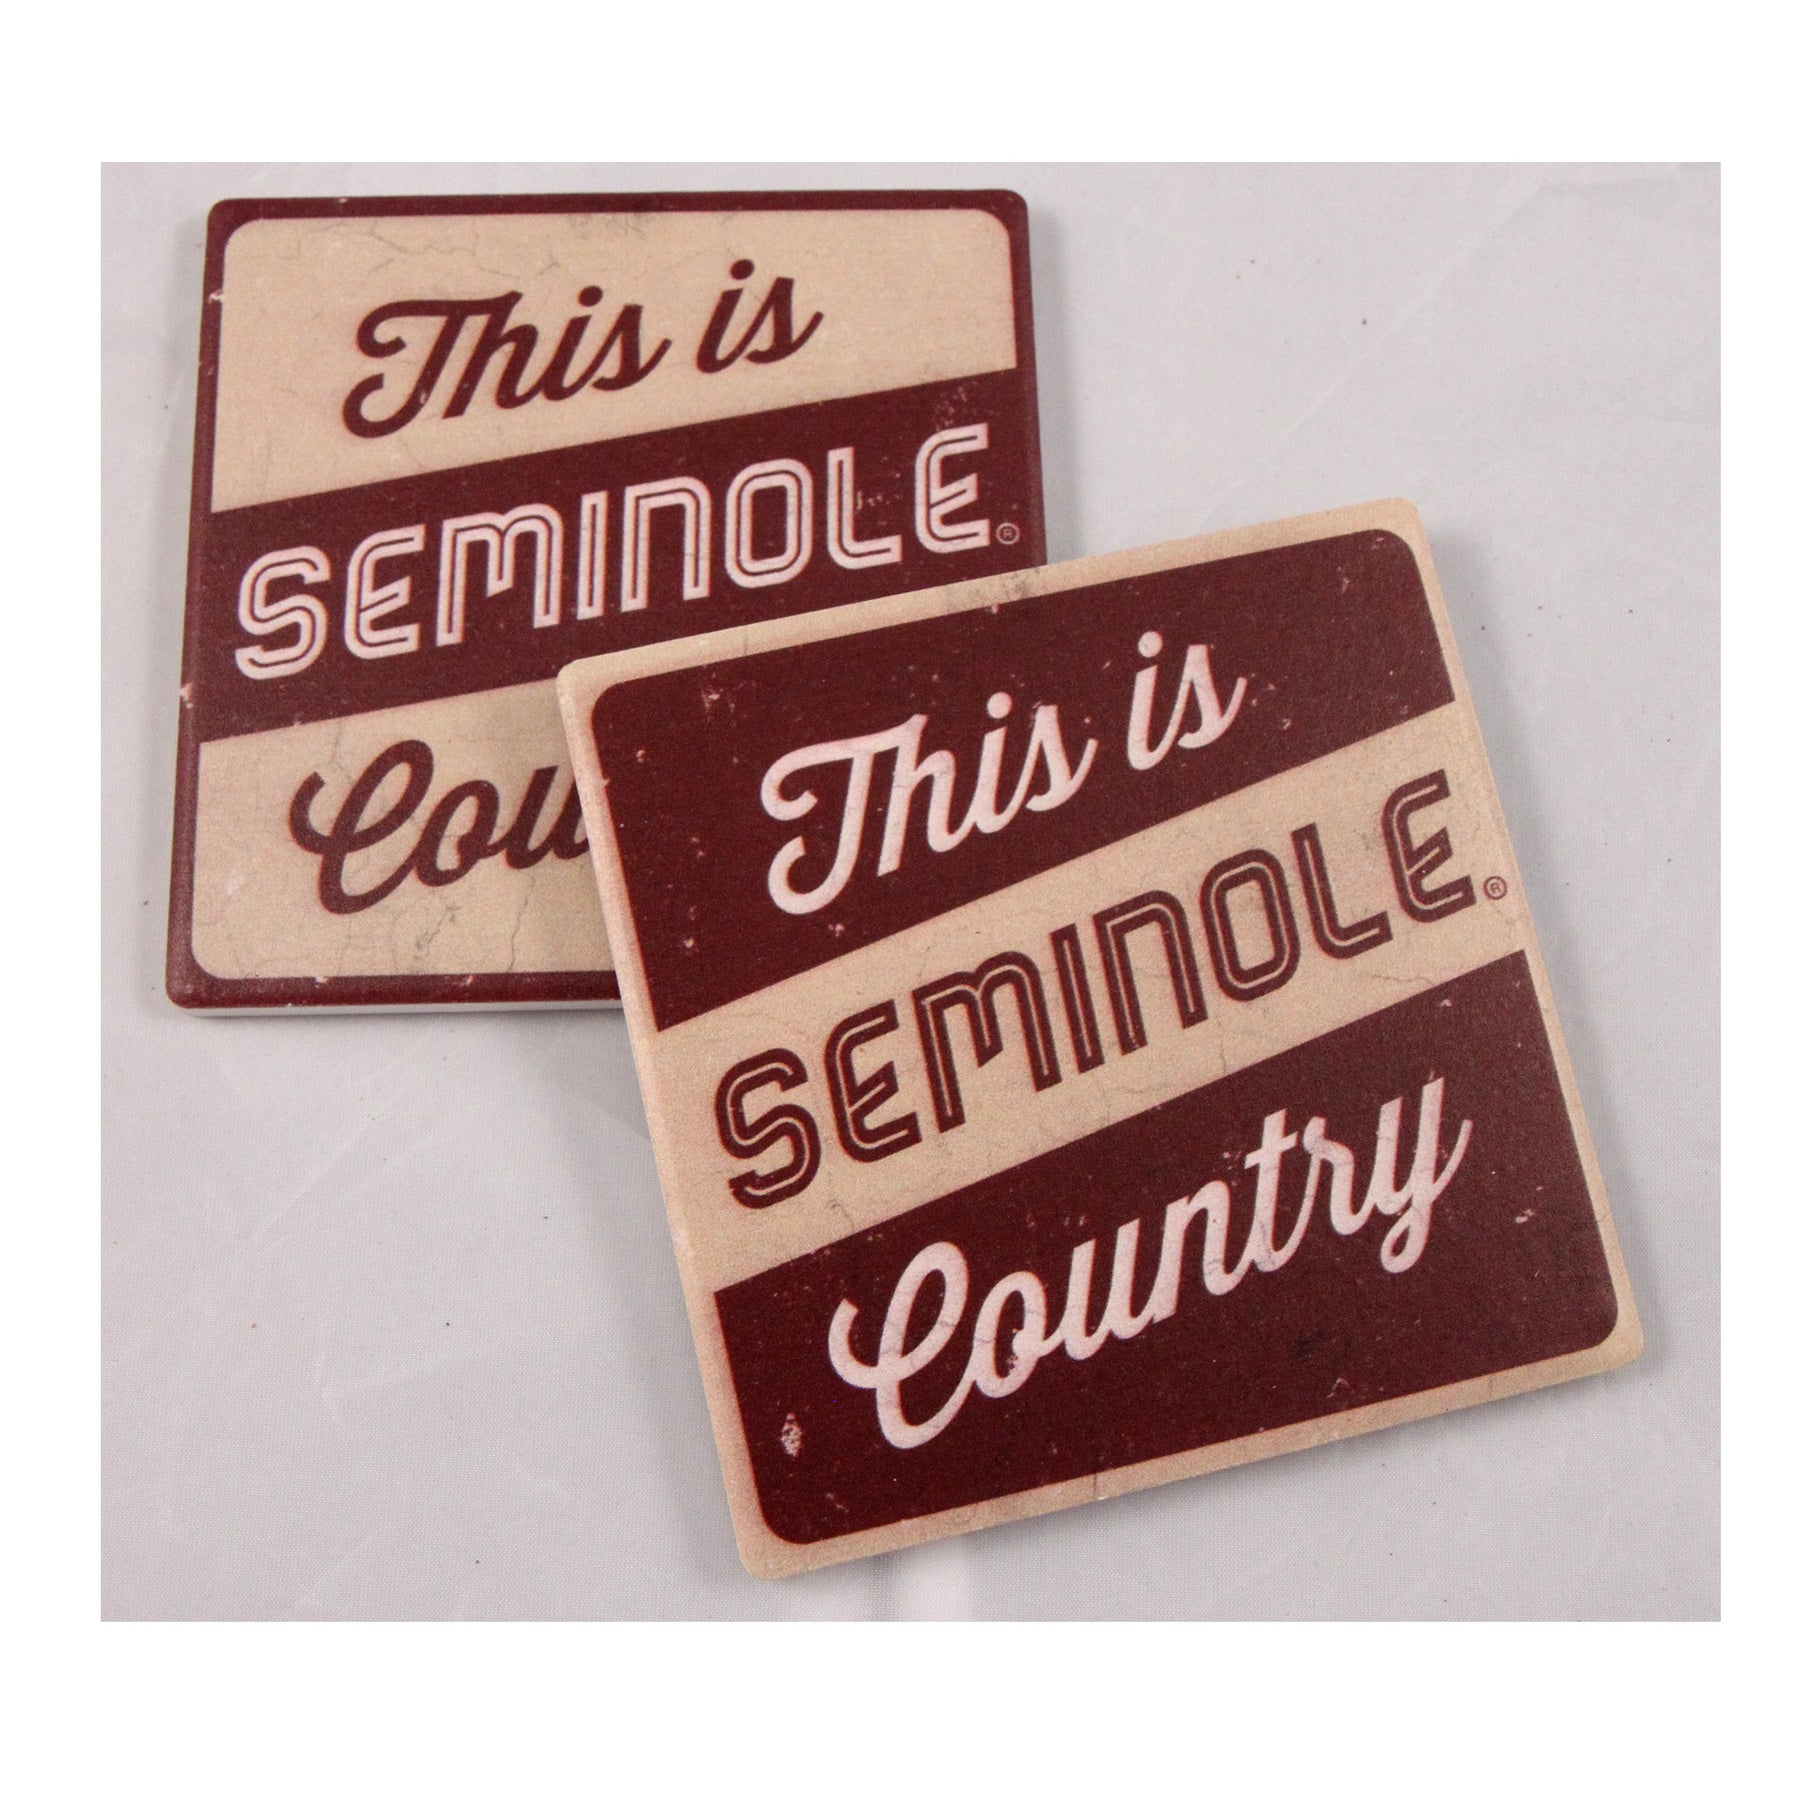 Decorative Round Sandstone Drink Coasters Florida State Seminoles Set of 4 Coasters